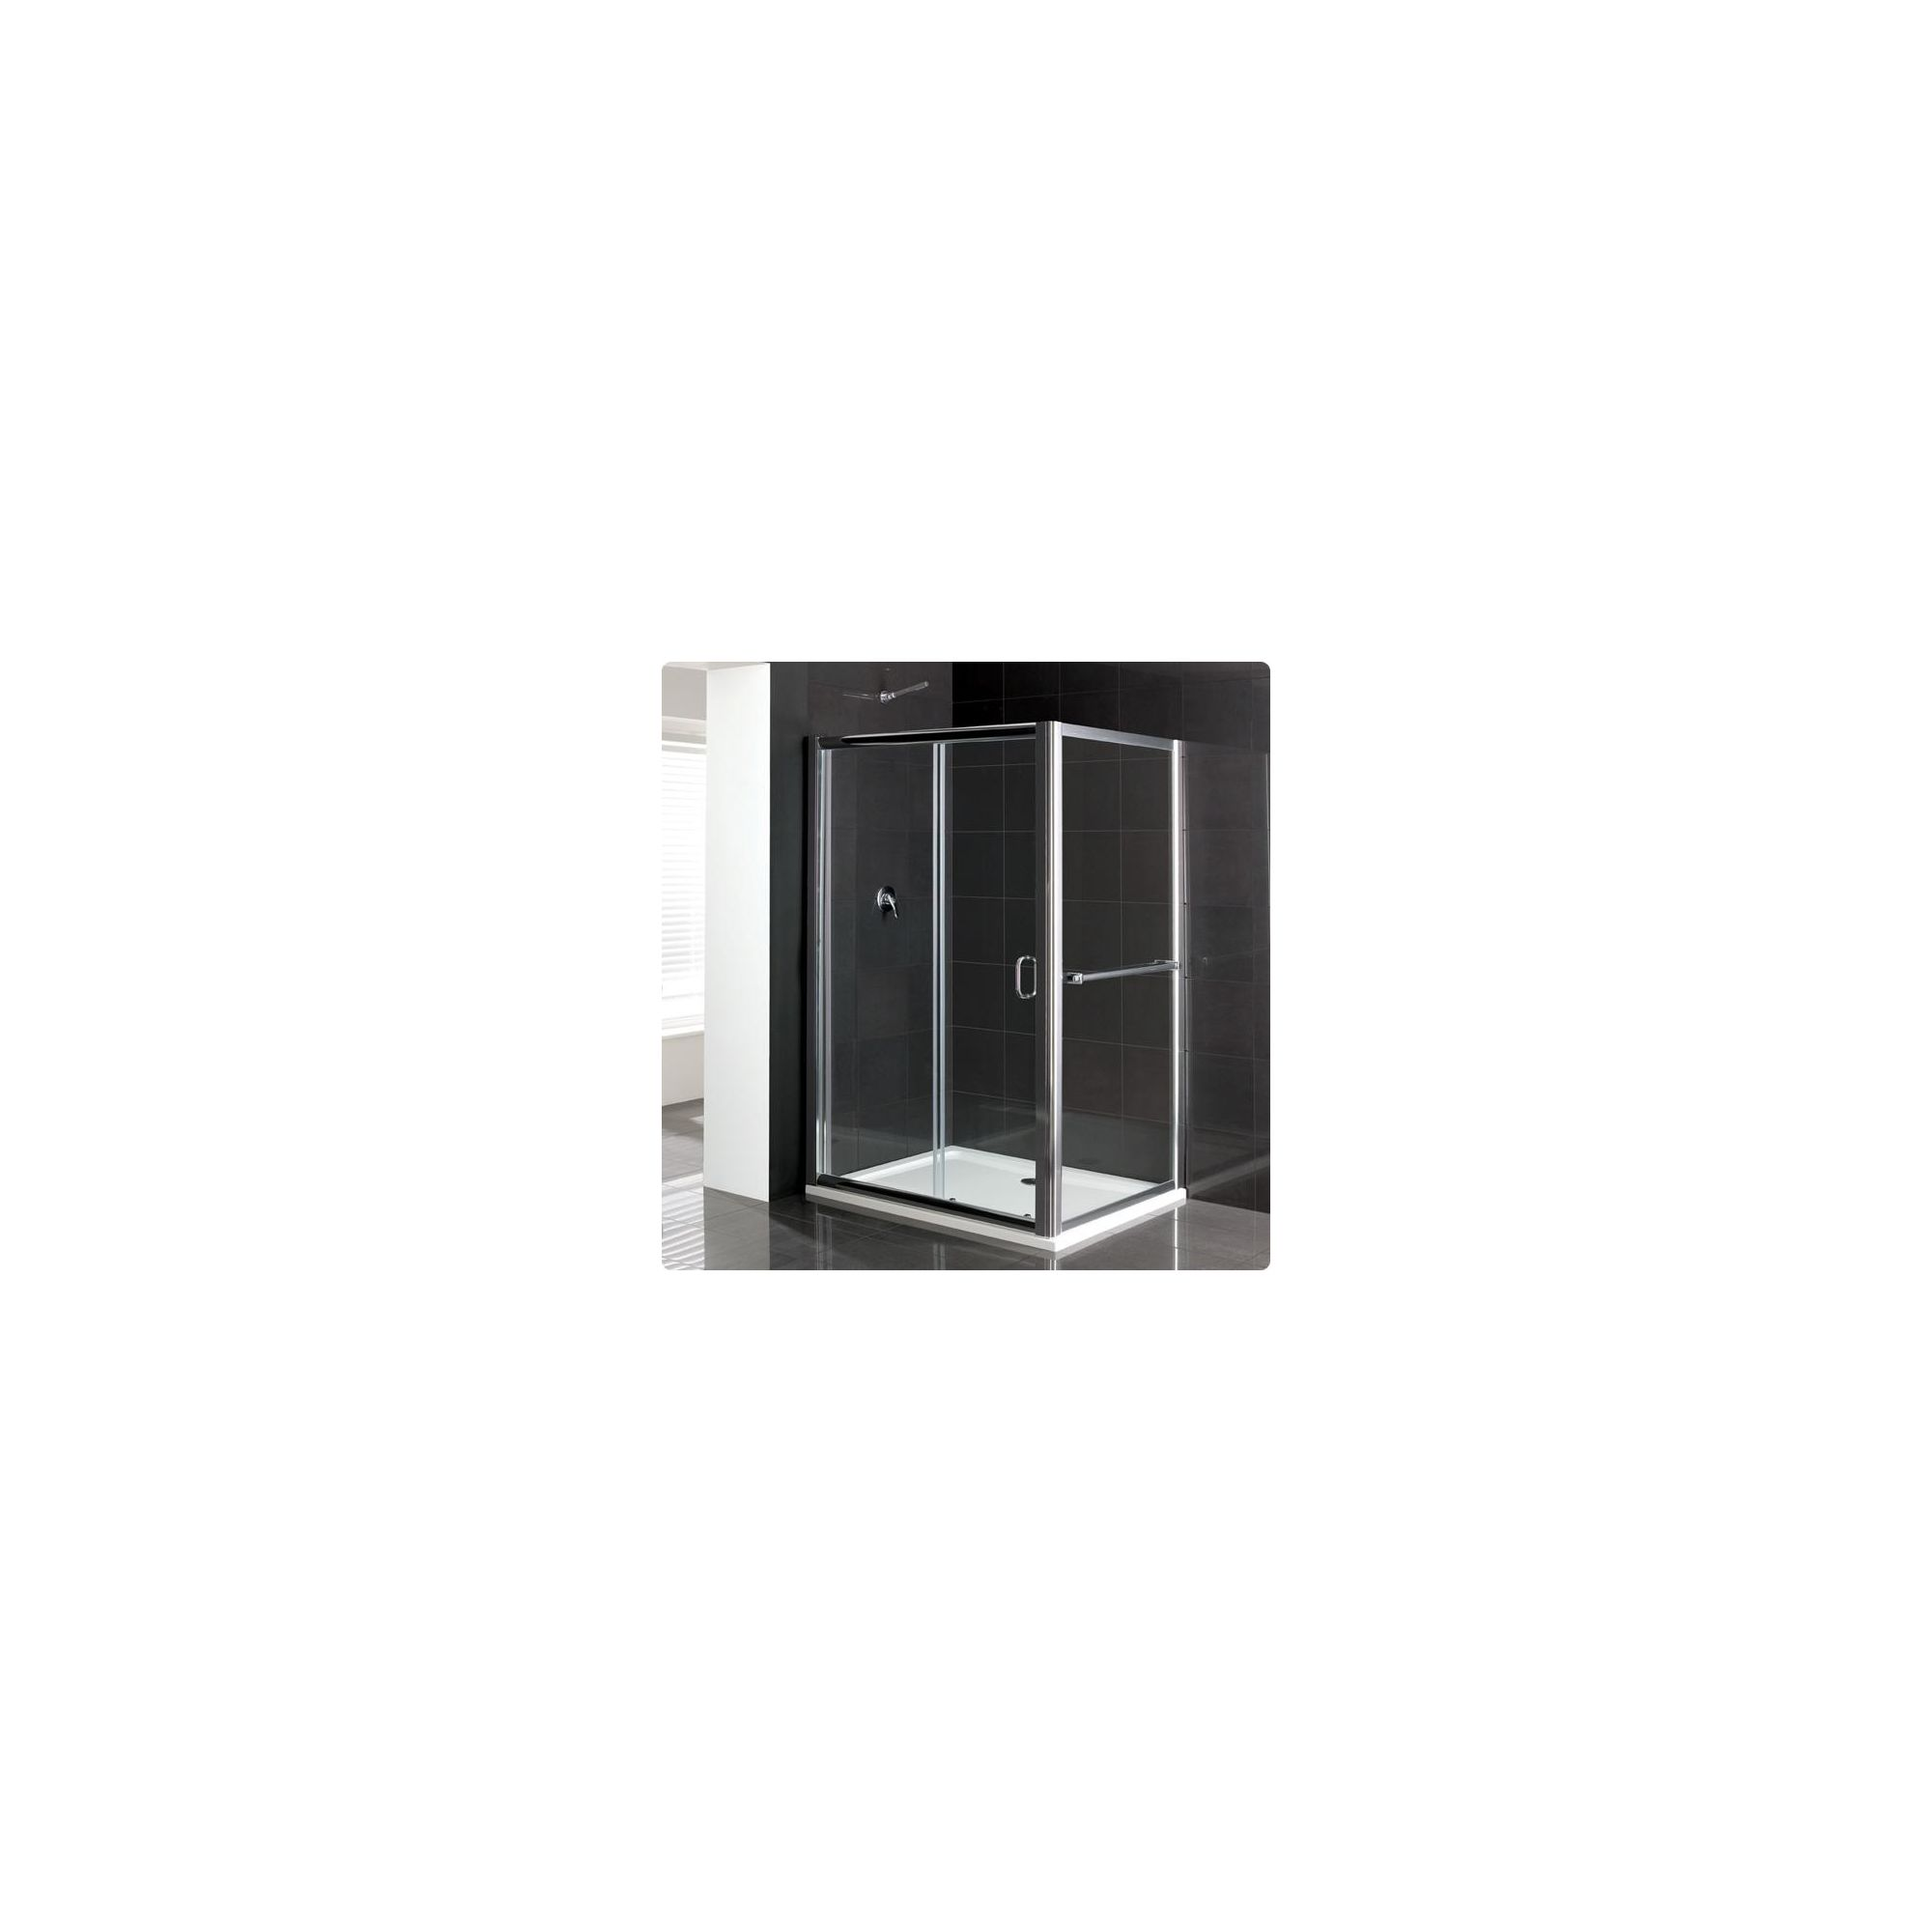 Duchy Elite Silver Sliding Door Shower Enclosure, 1000mm x 700mm, Standard Tray, 6mm Glass at Tesco Direct